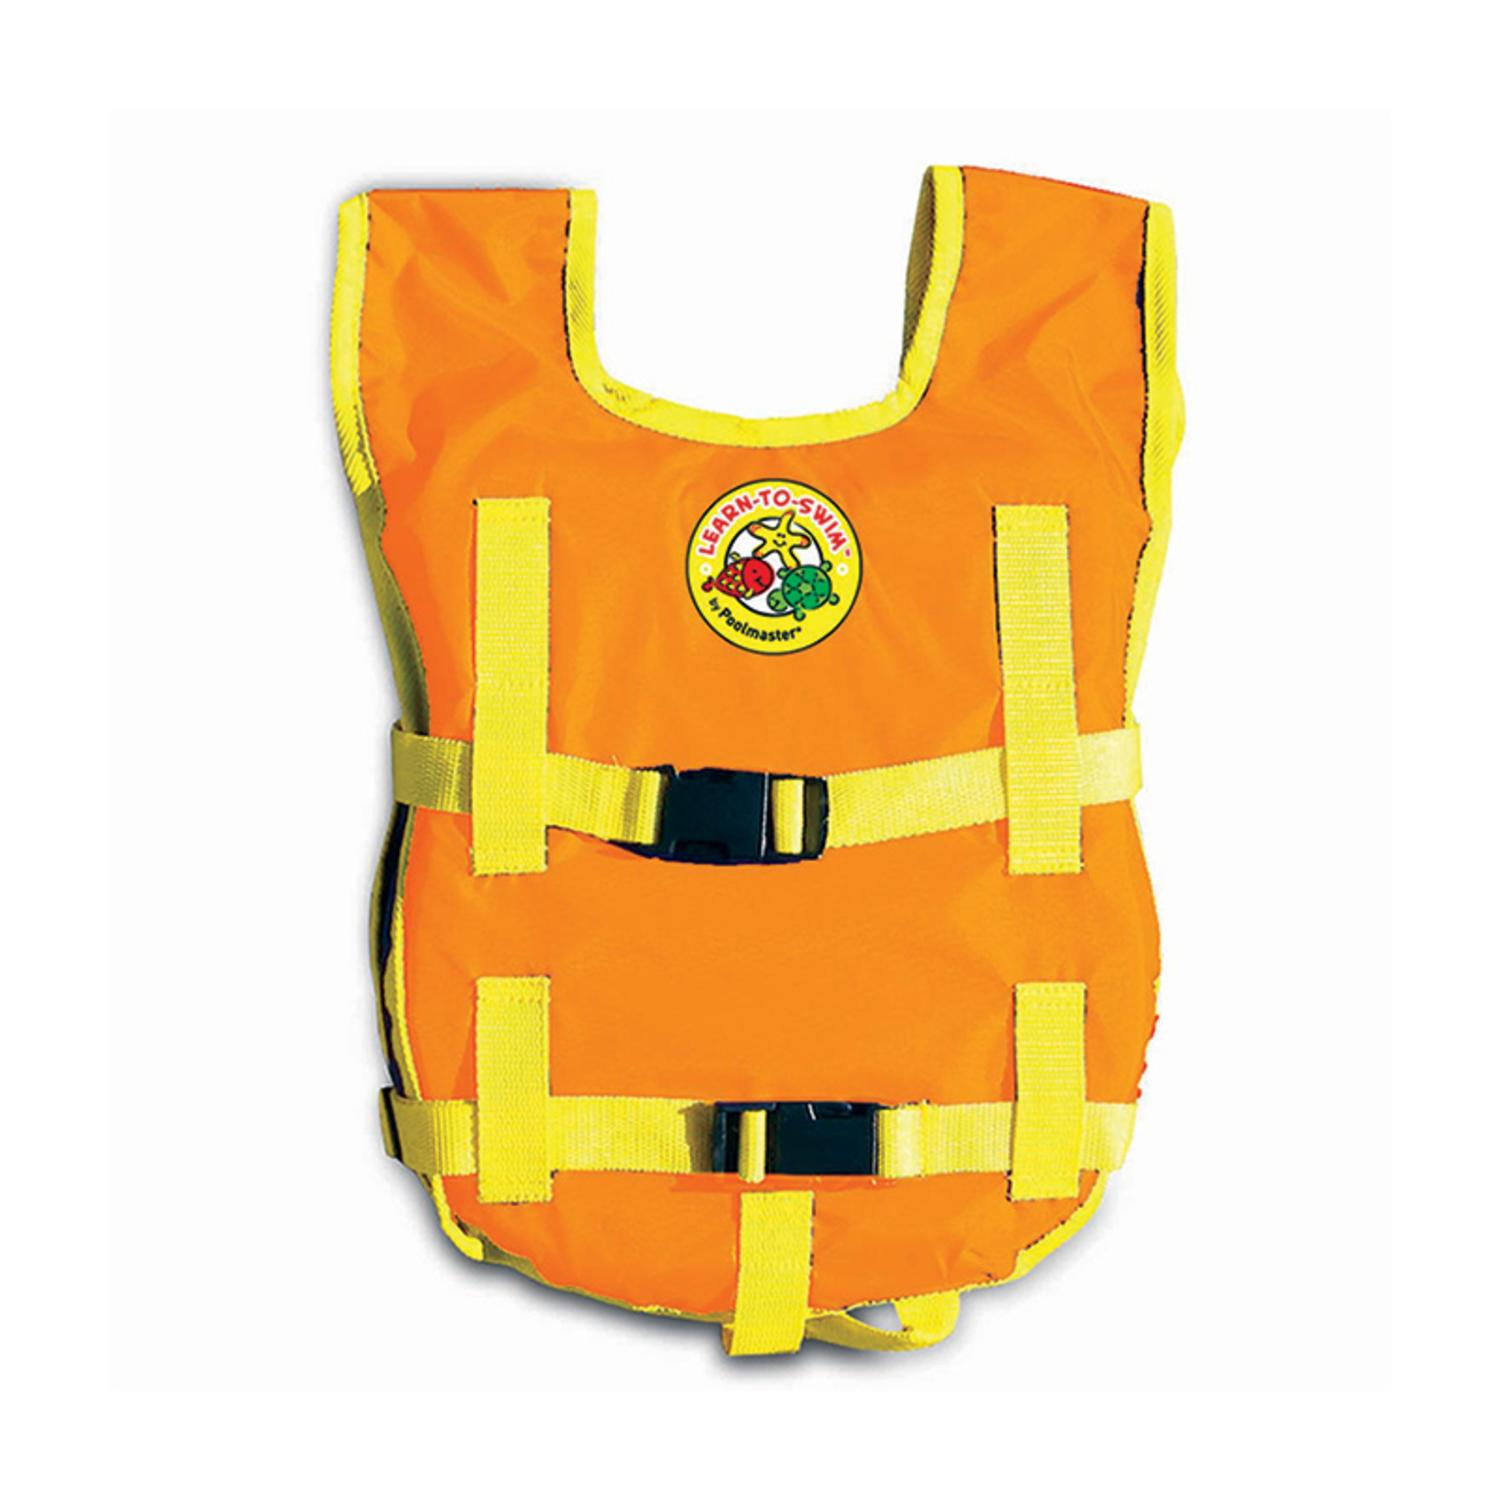 Orange and Yellow Unisex Child's Water or Swimming Pool Freestyler Swim Training Vest - Up to 80lbs